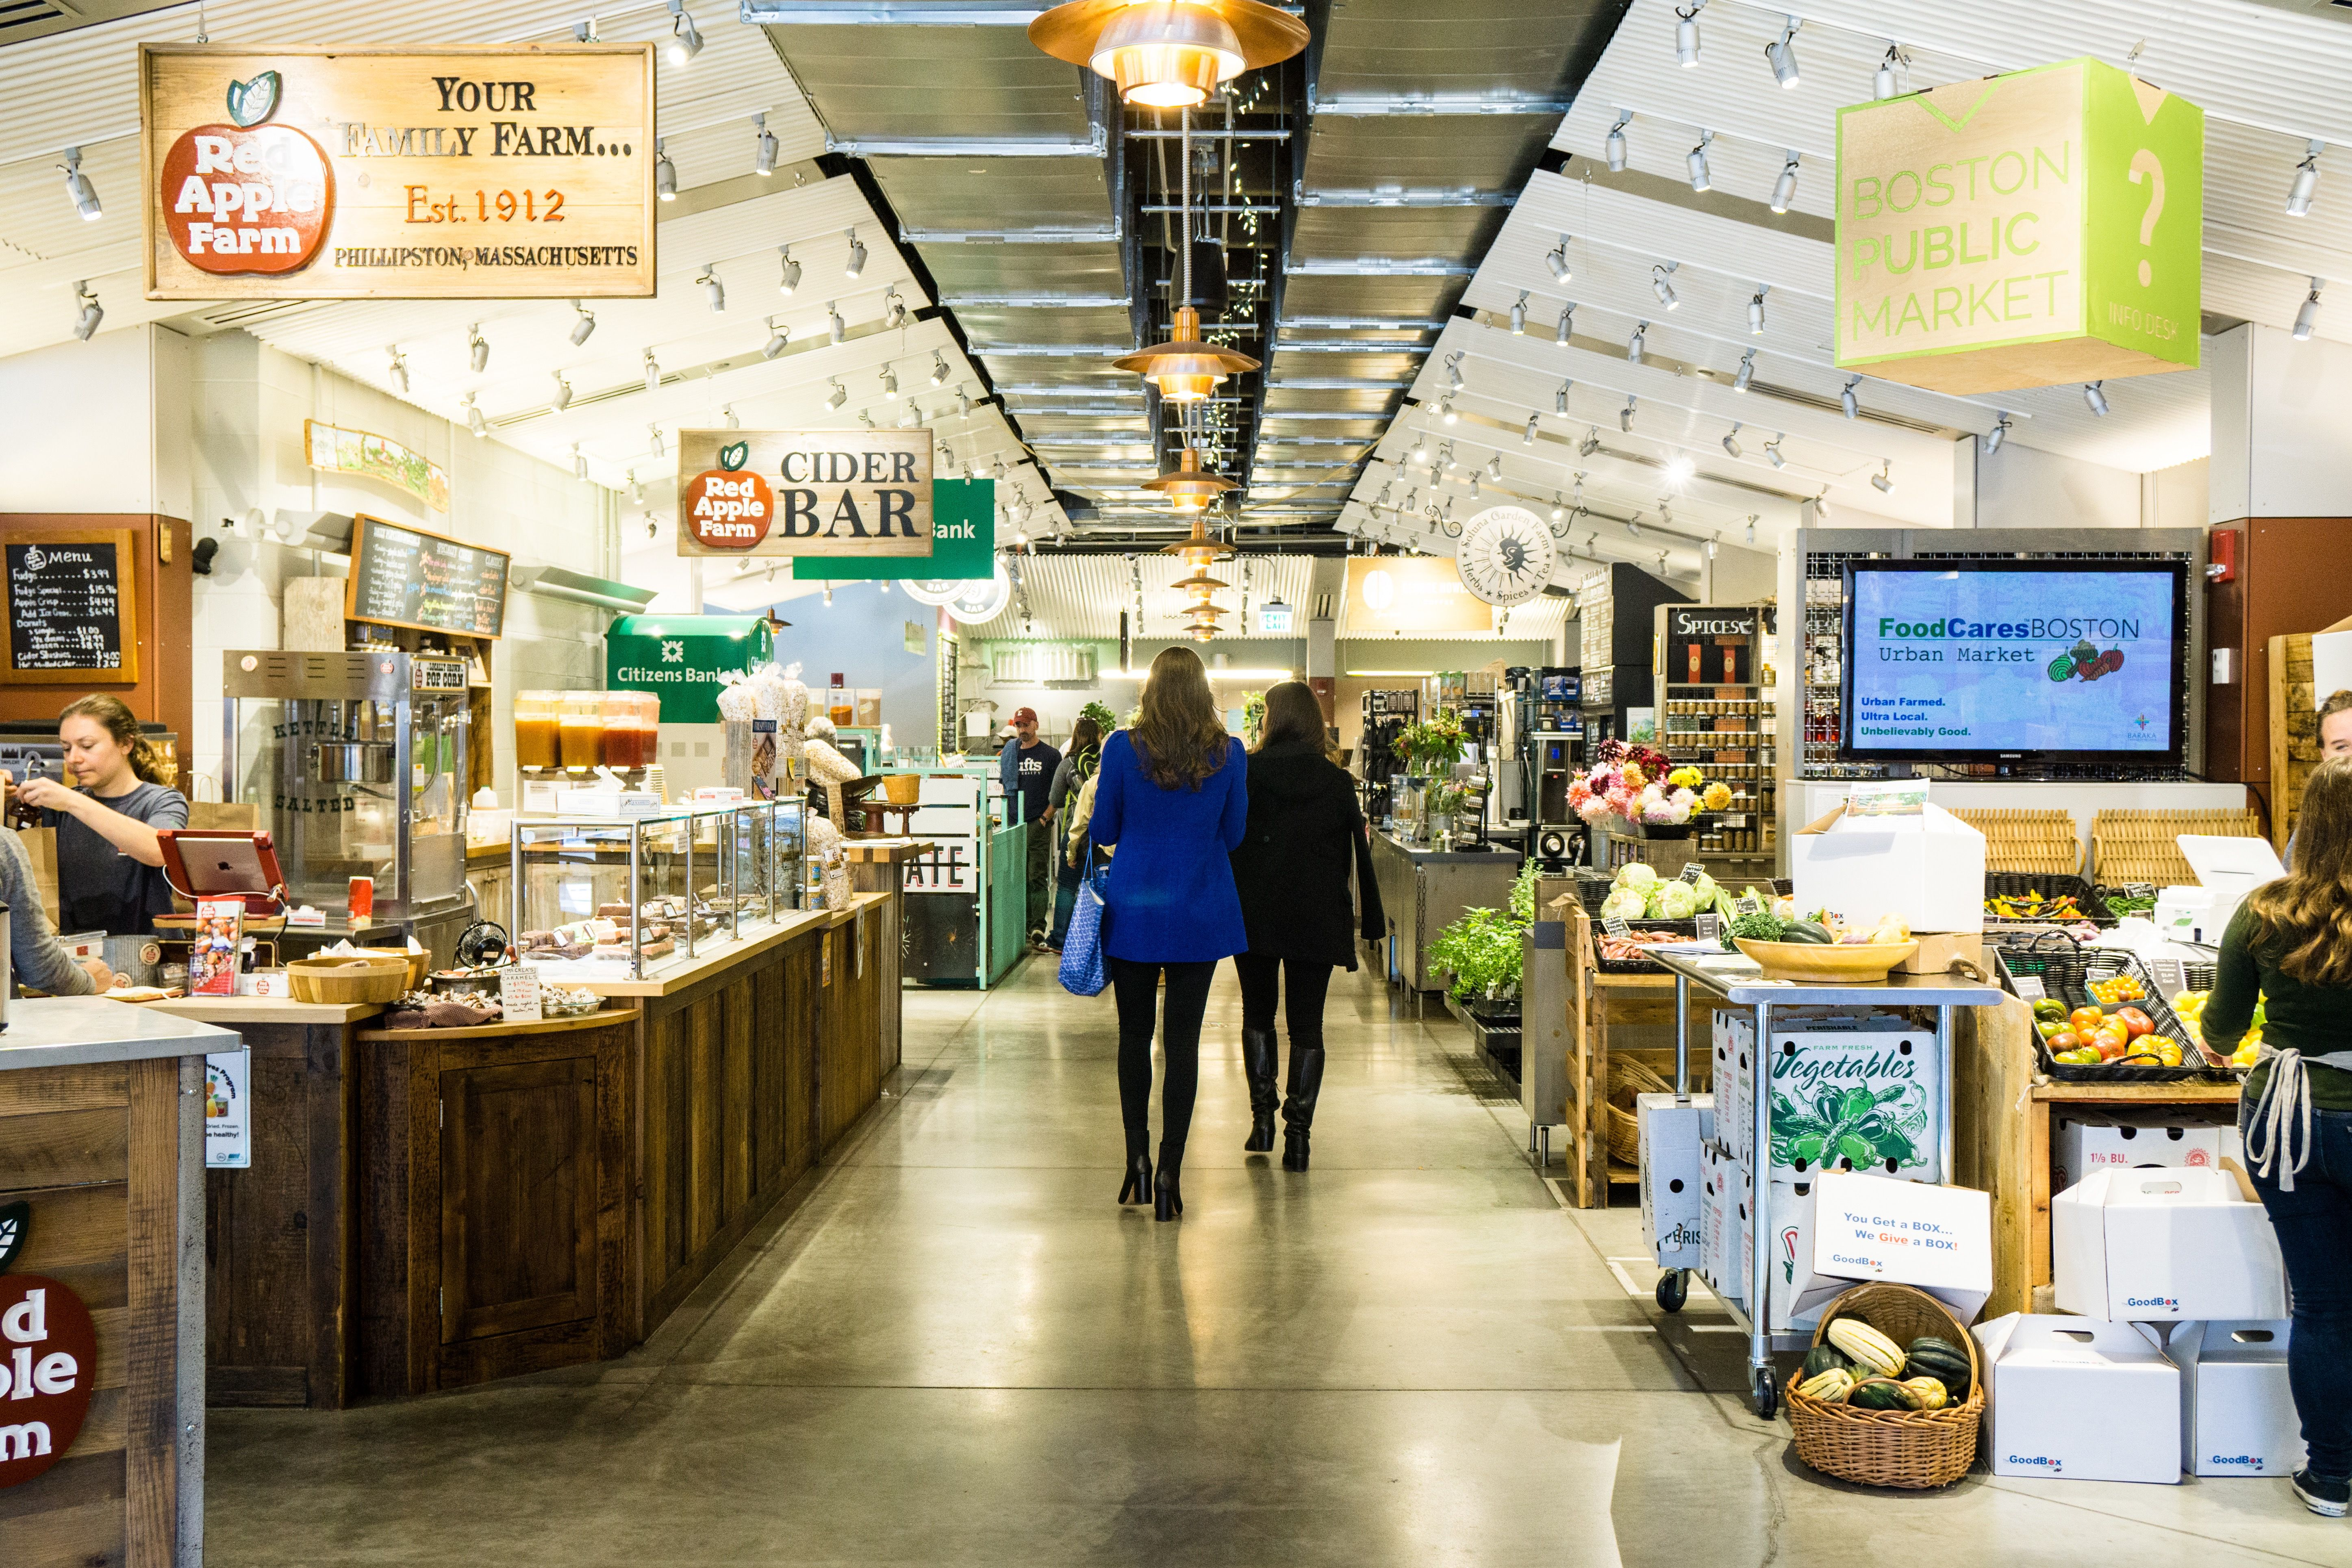 Stanza Dei Sigari Boston : Boston public market about things to do in bost